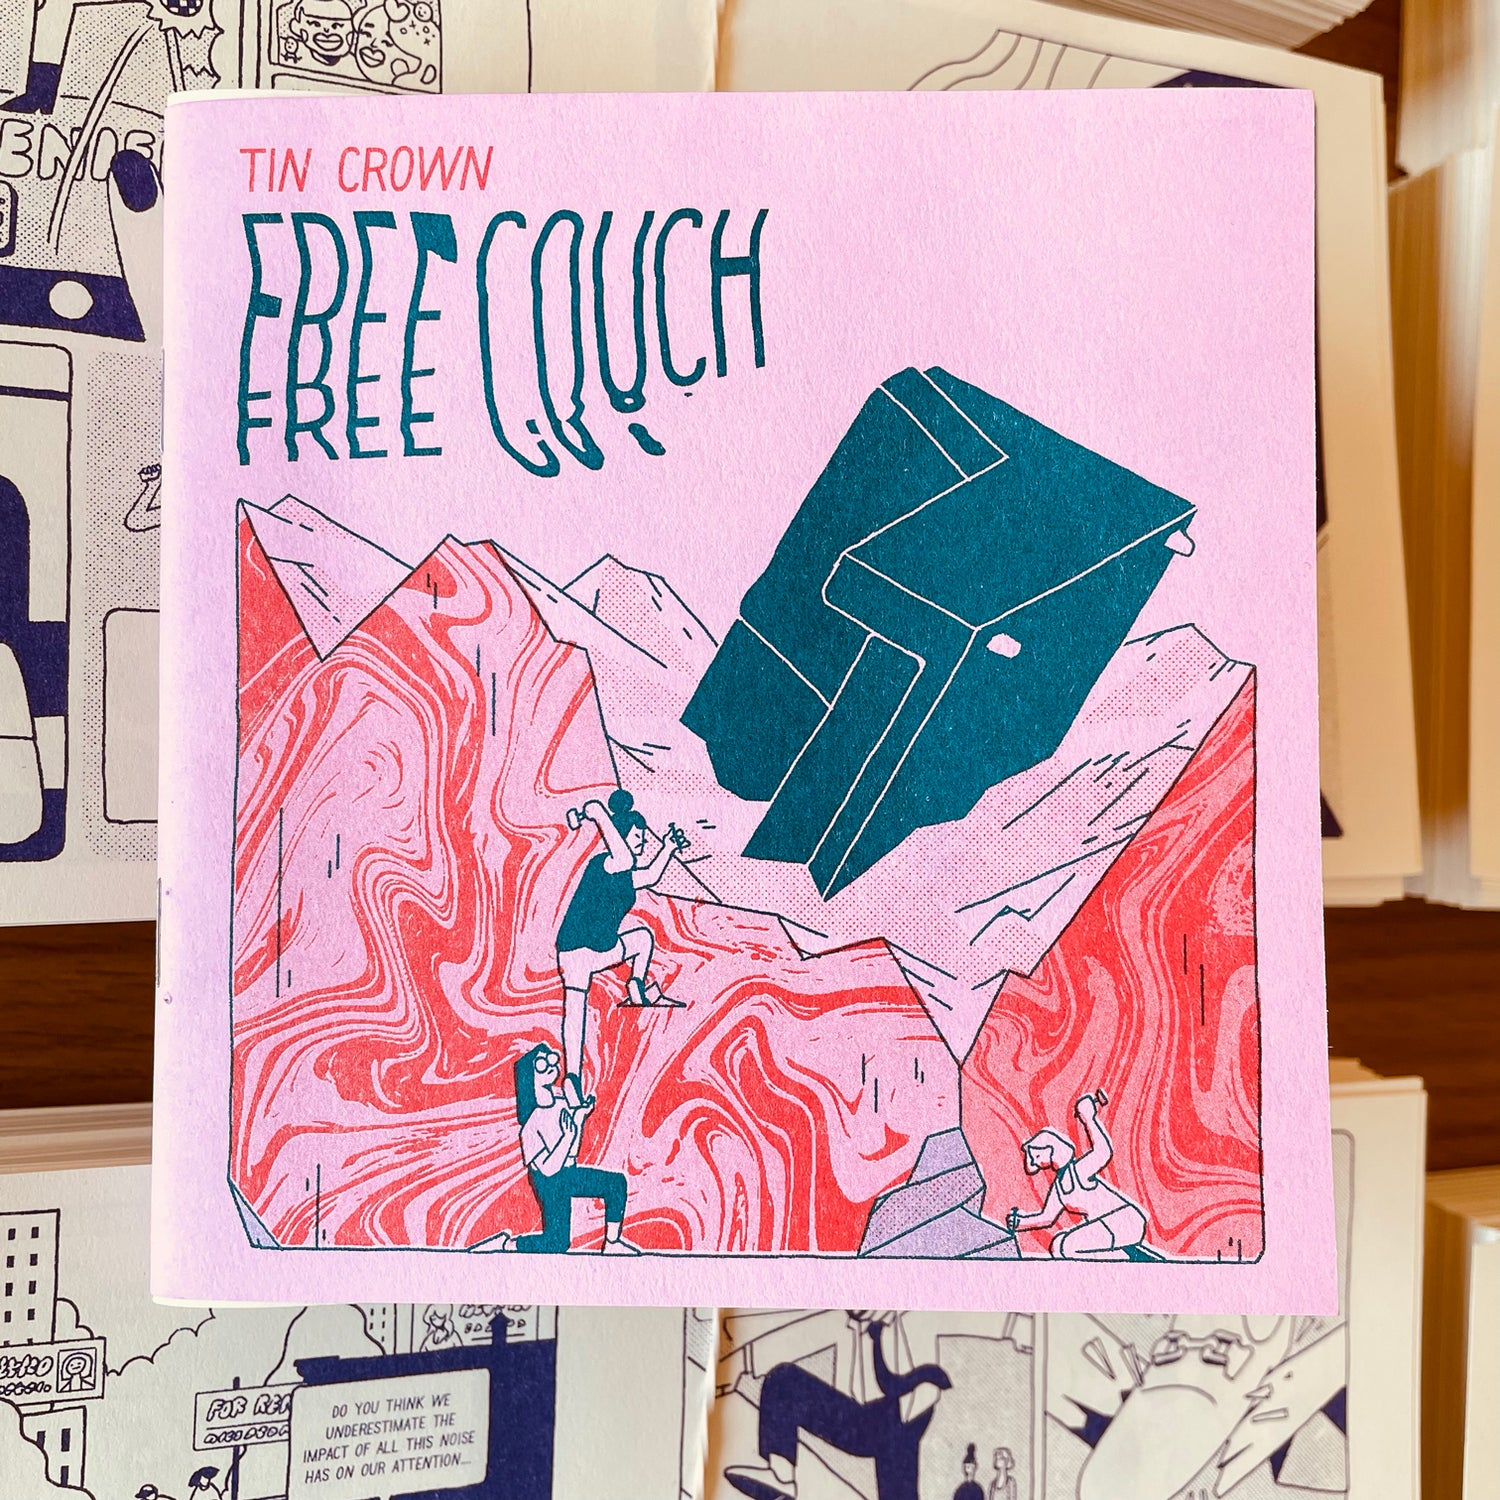 Tin Crown: Free Couch